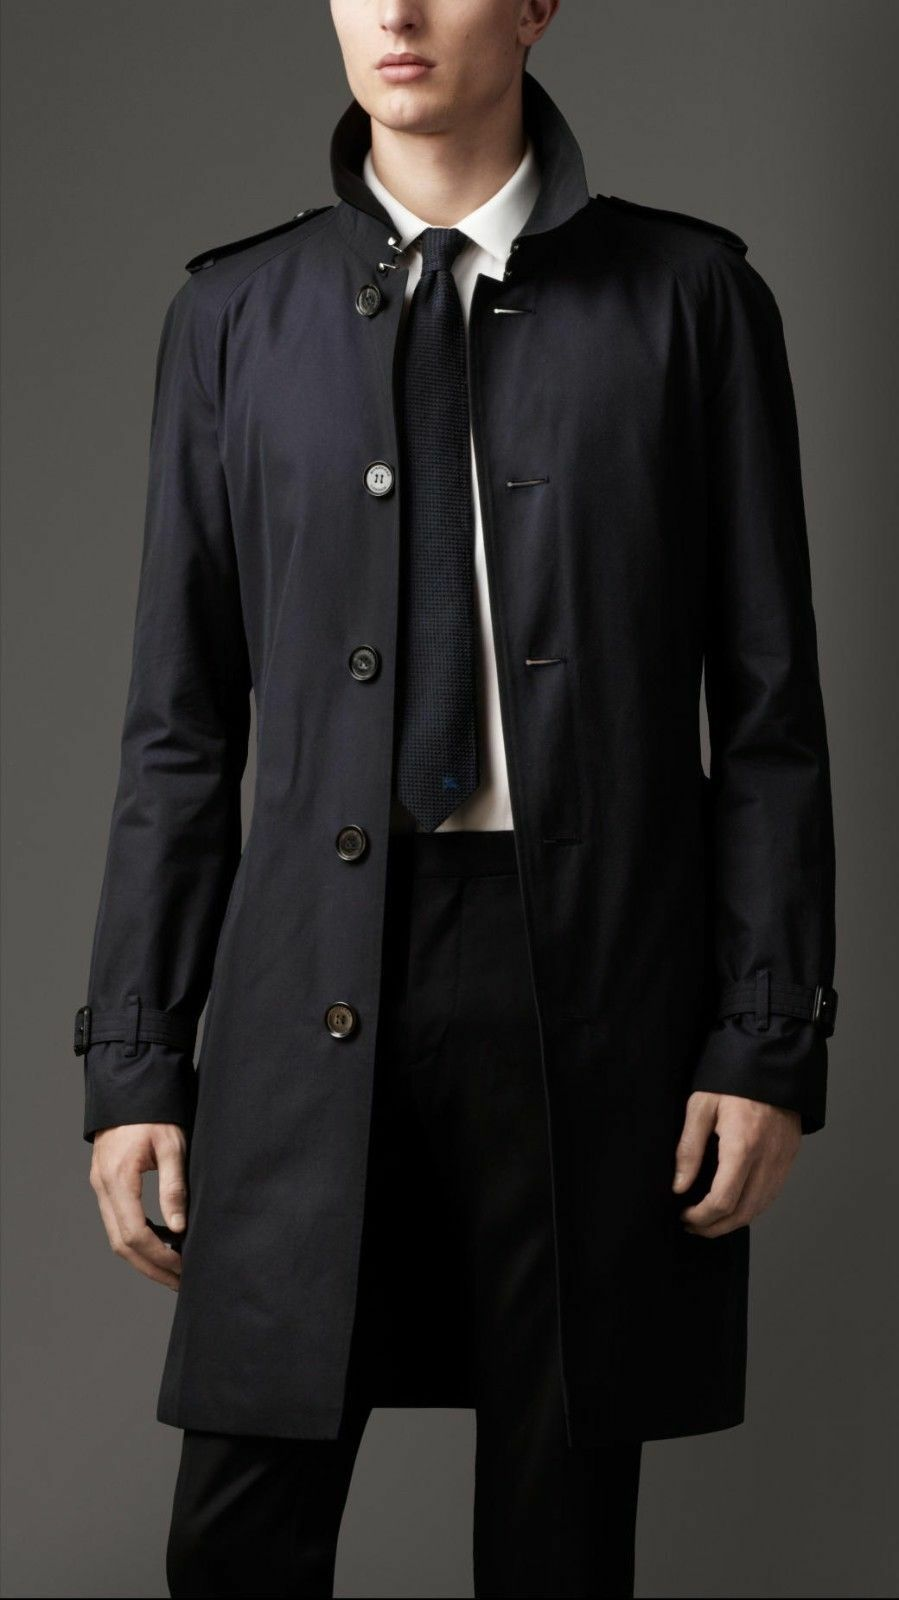 Top 10 Men's Trench Coats | eBay